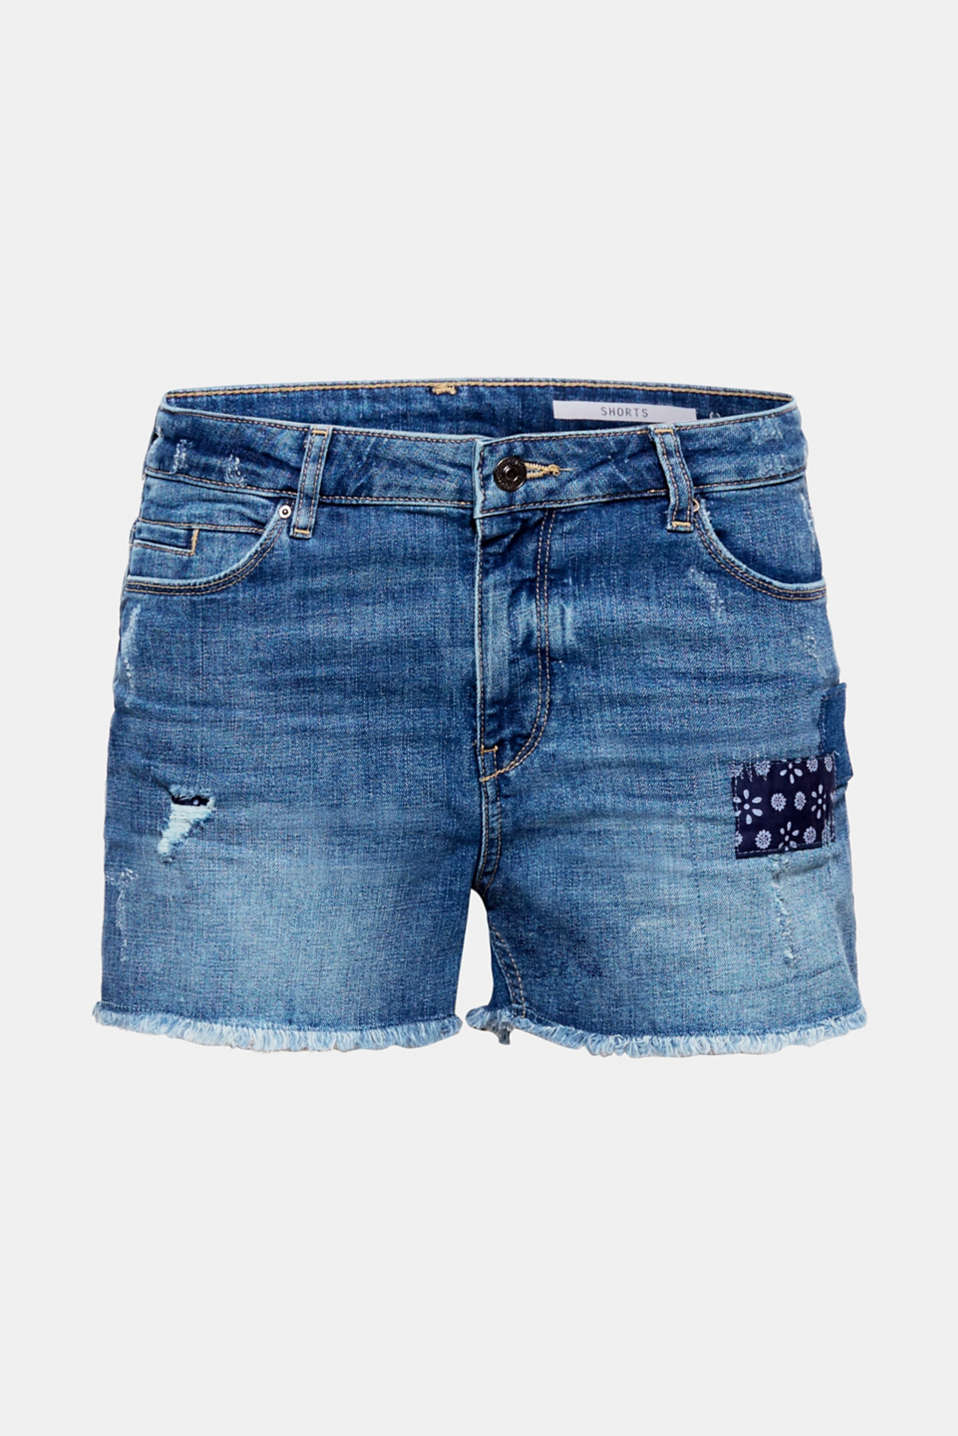 Summer essential: the appliqués and distressed effects give these denim shorts with recycled cotton their cool style.